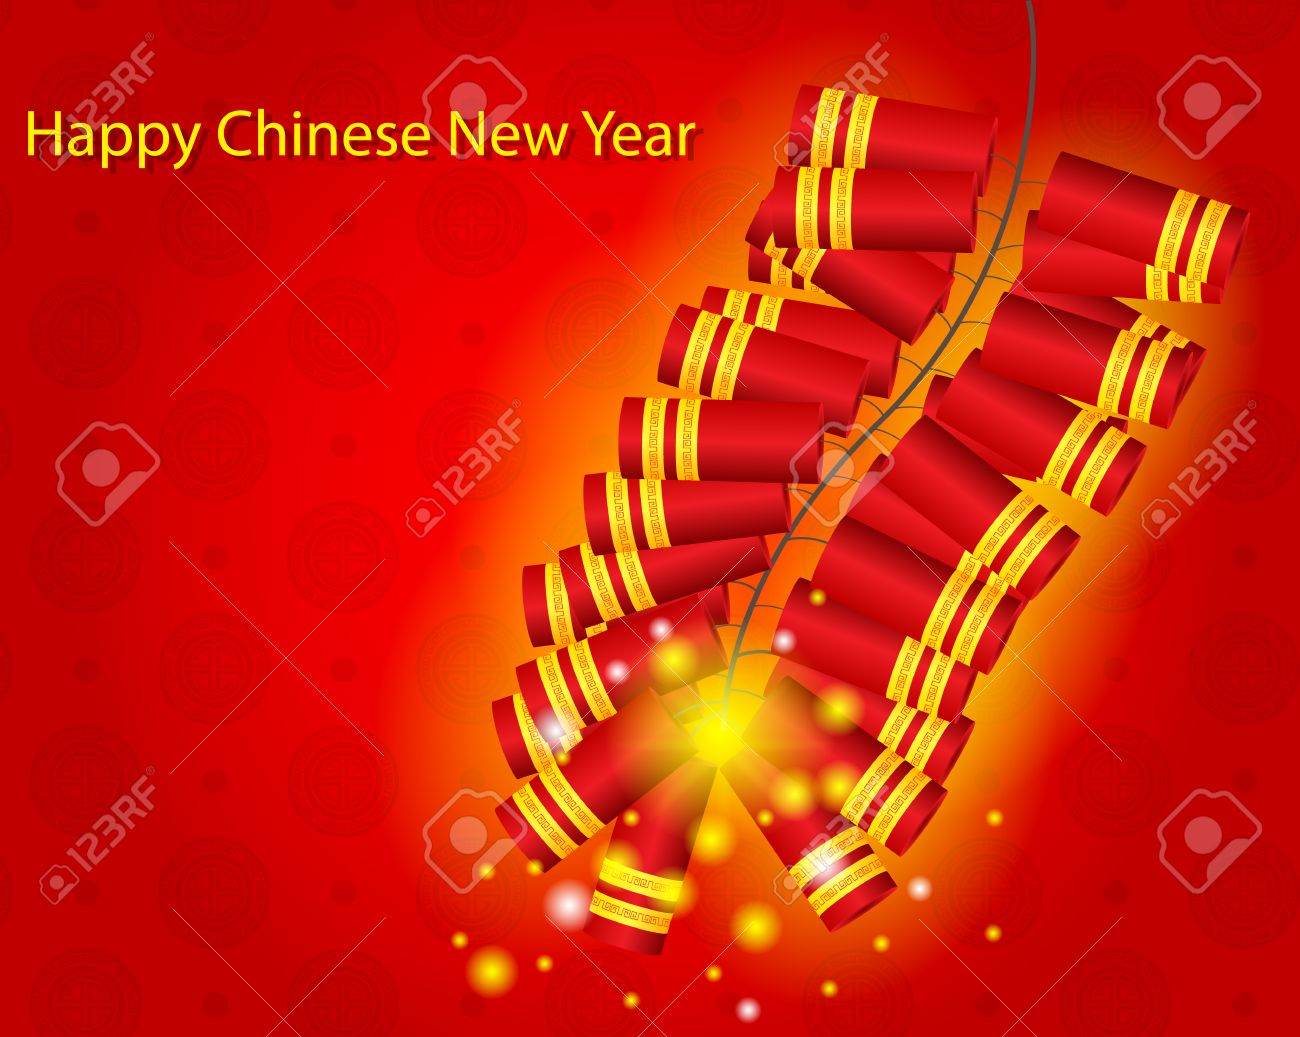 happy chinese new year with fire cracker background vector illustration stock vector 35148852